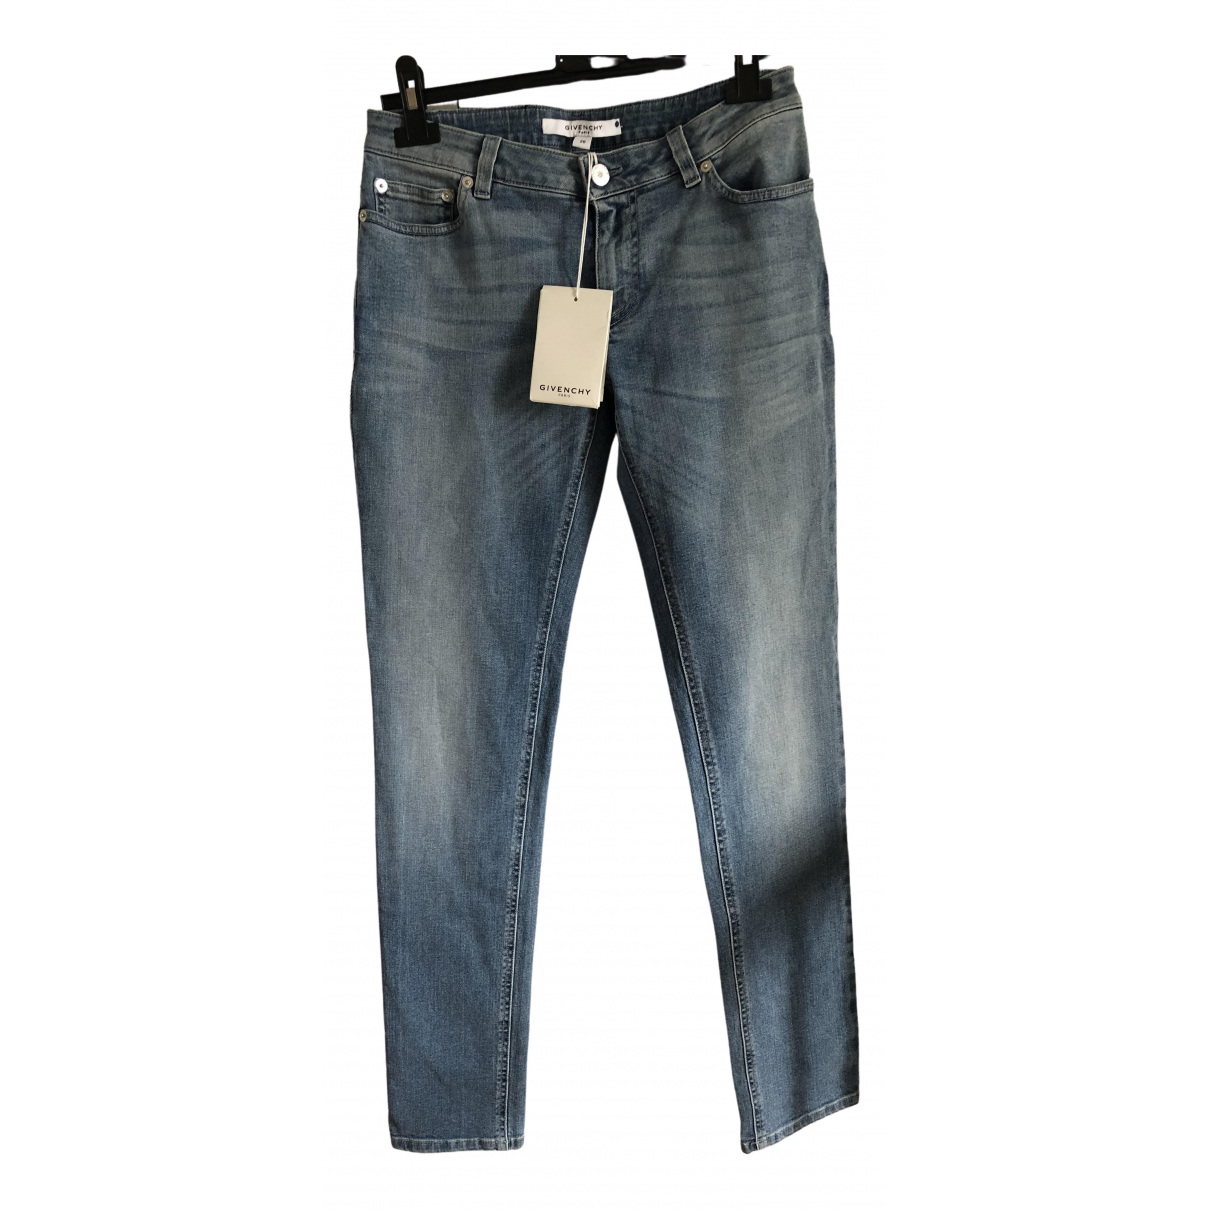 Givenchy \N Blue Cotton - elasthane Jeans for Women 34 FR